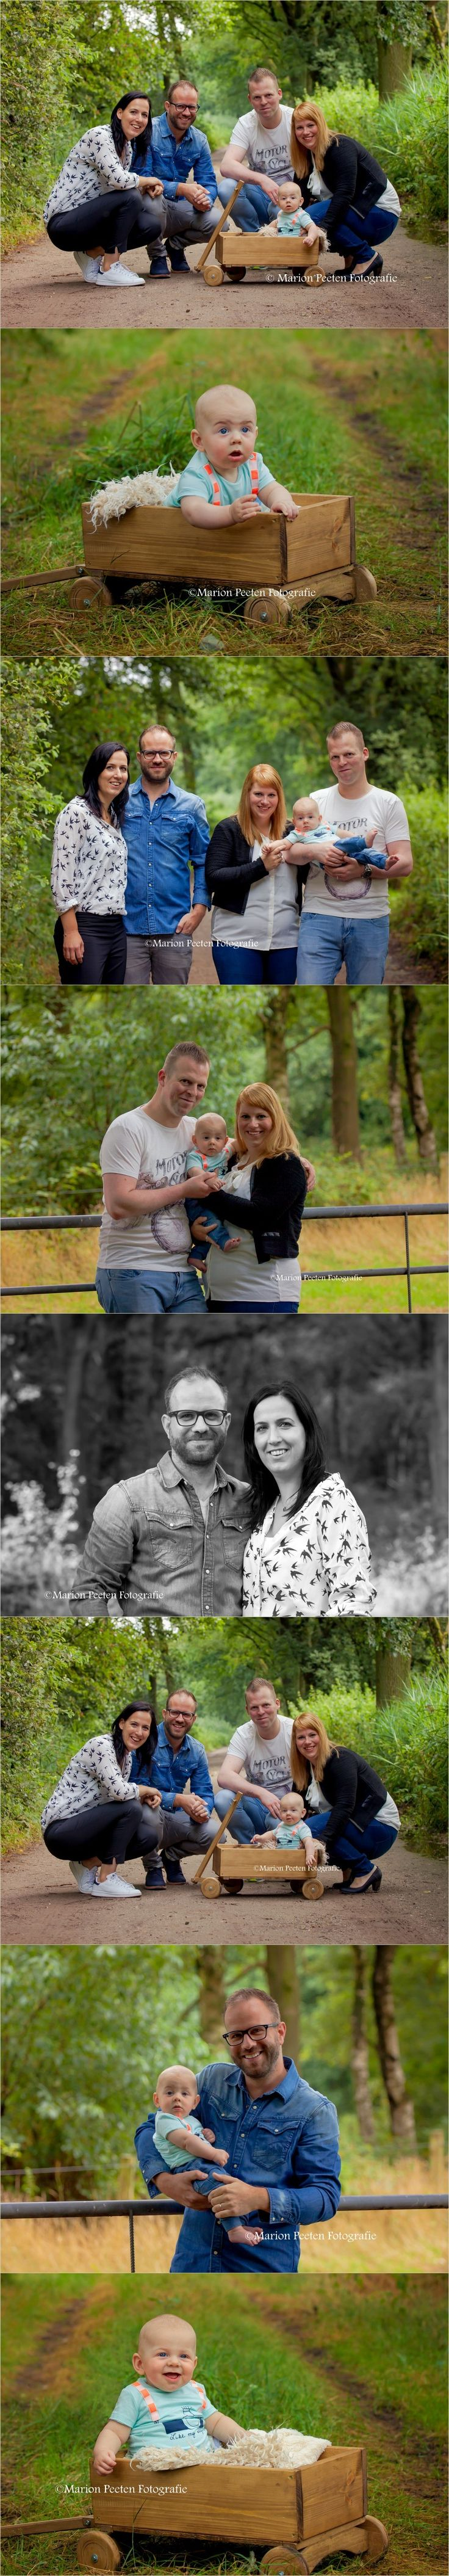 Outdoor family photography, on location family photography  Buiten familie fotografie, familie fotografie op een buiten locatie